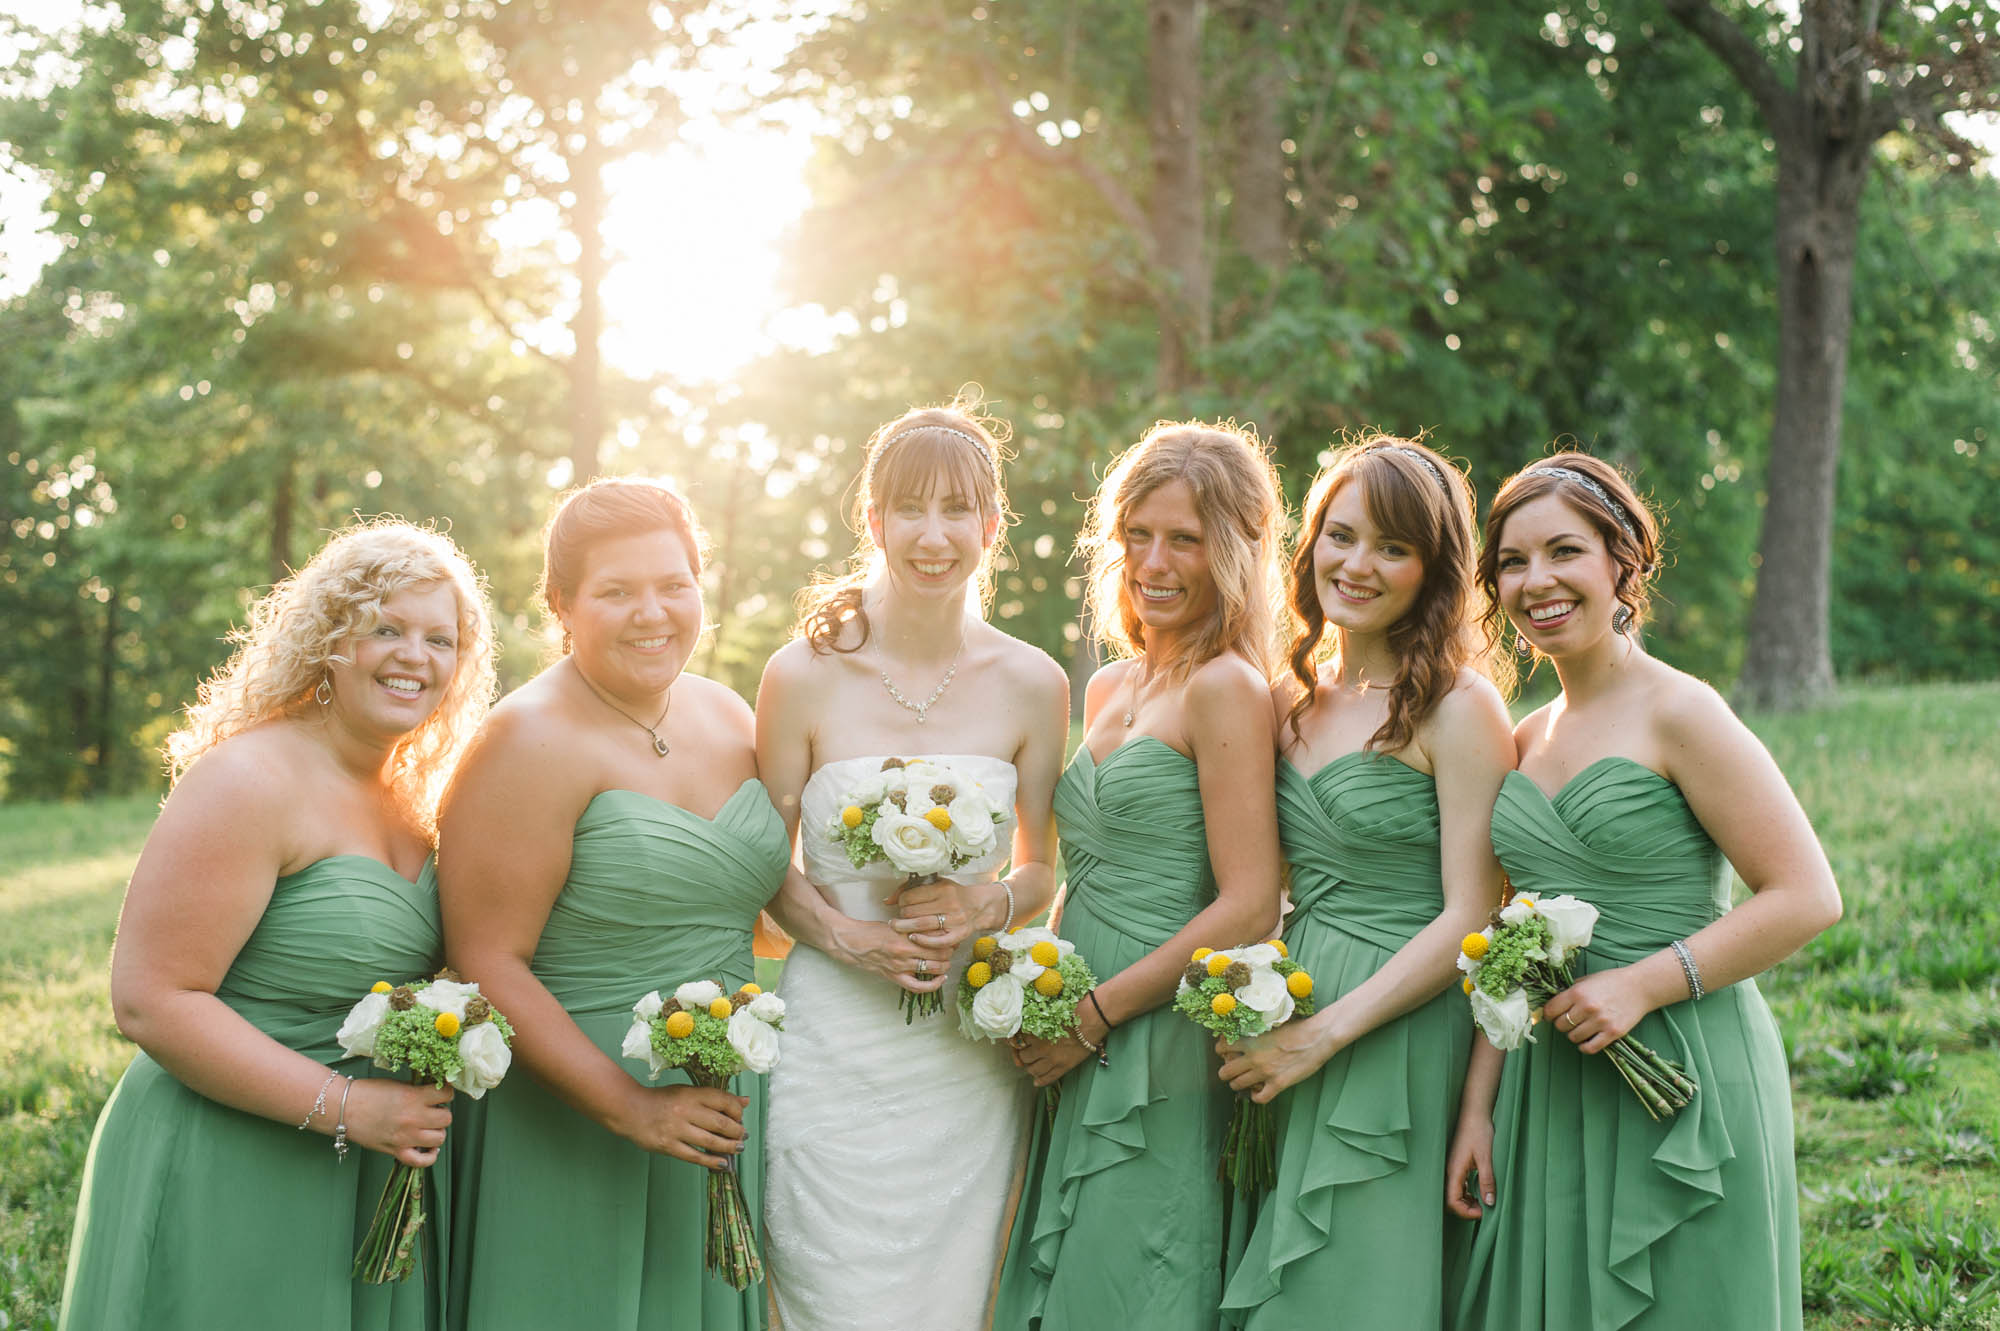 Country Wedding Bride and Bridesmaid Bouquets with Billy Balls and Scabiosa Pods